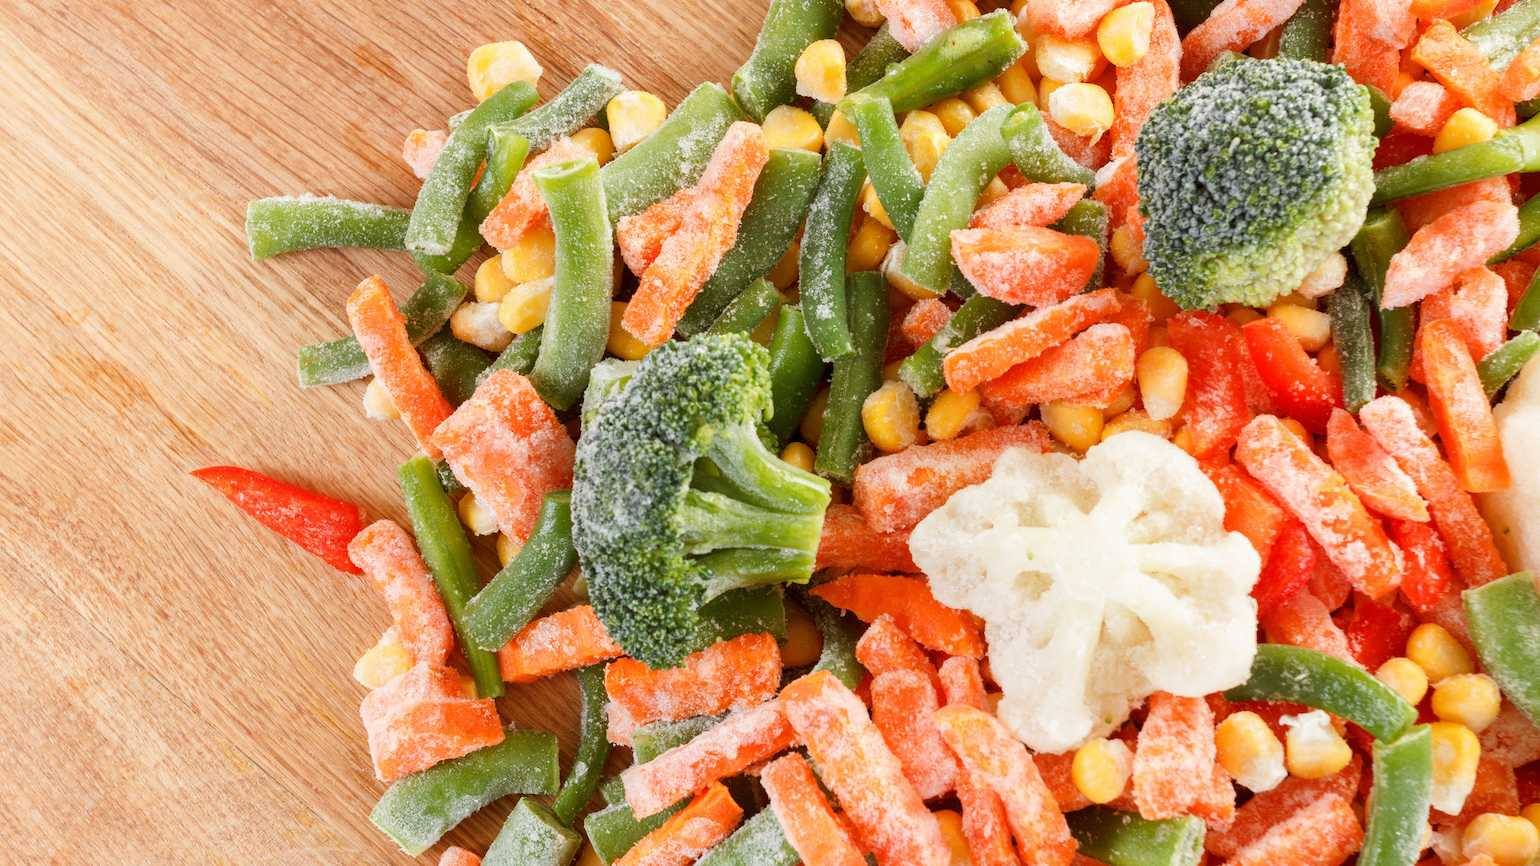 Affordable frozen veggies